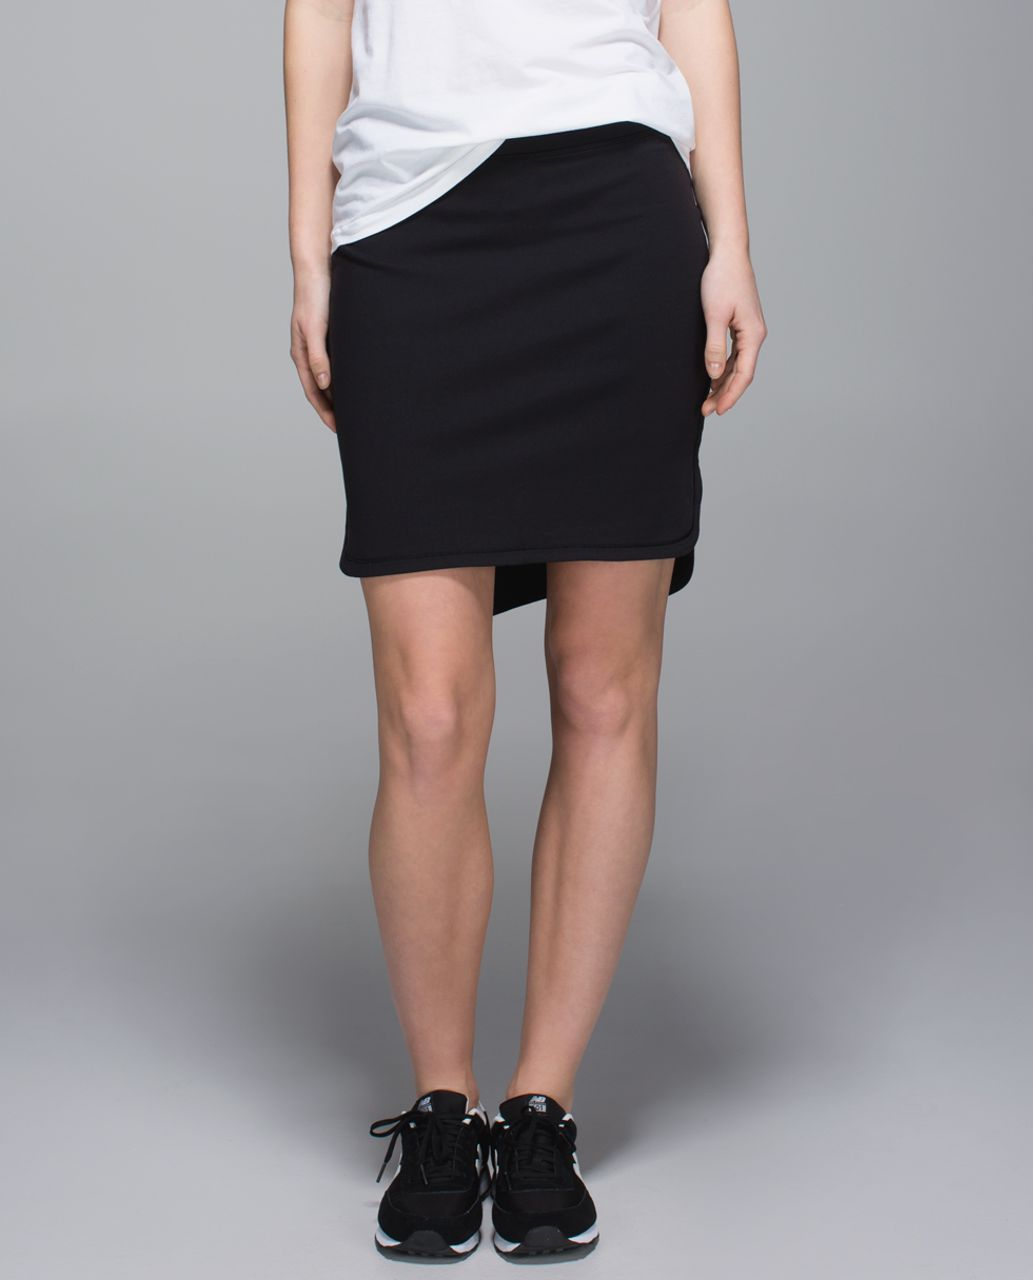 Lululemon City Skirt - Black